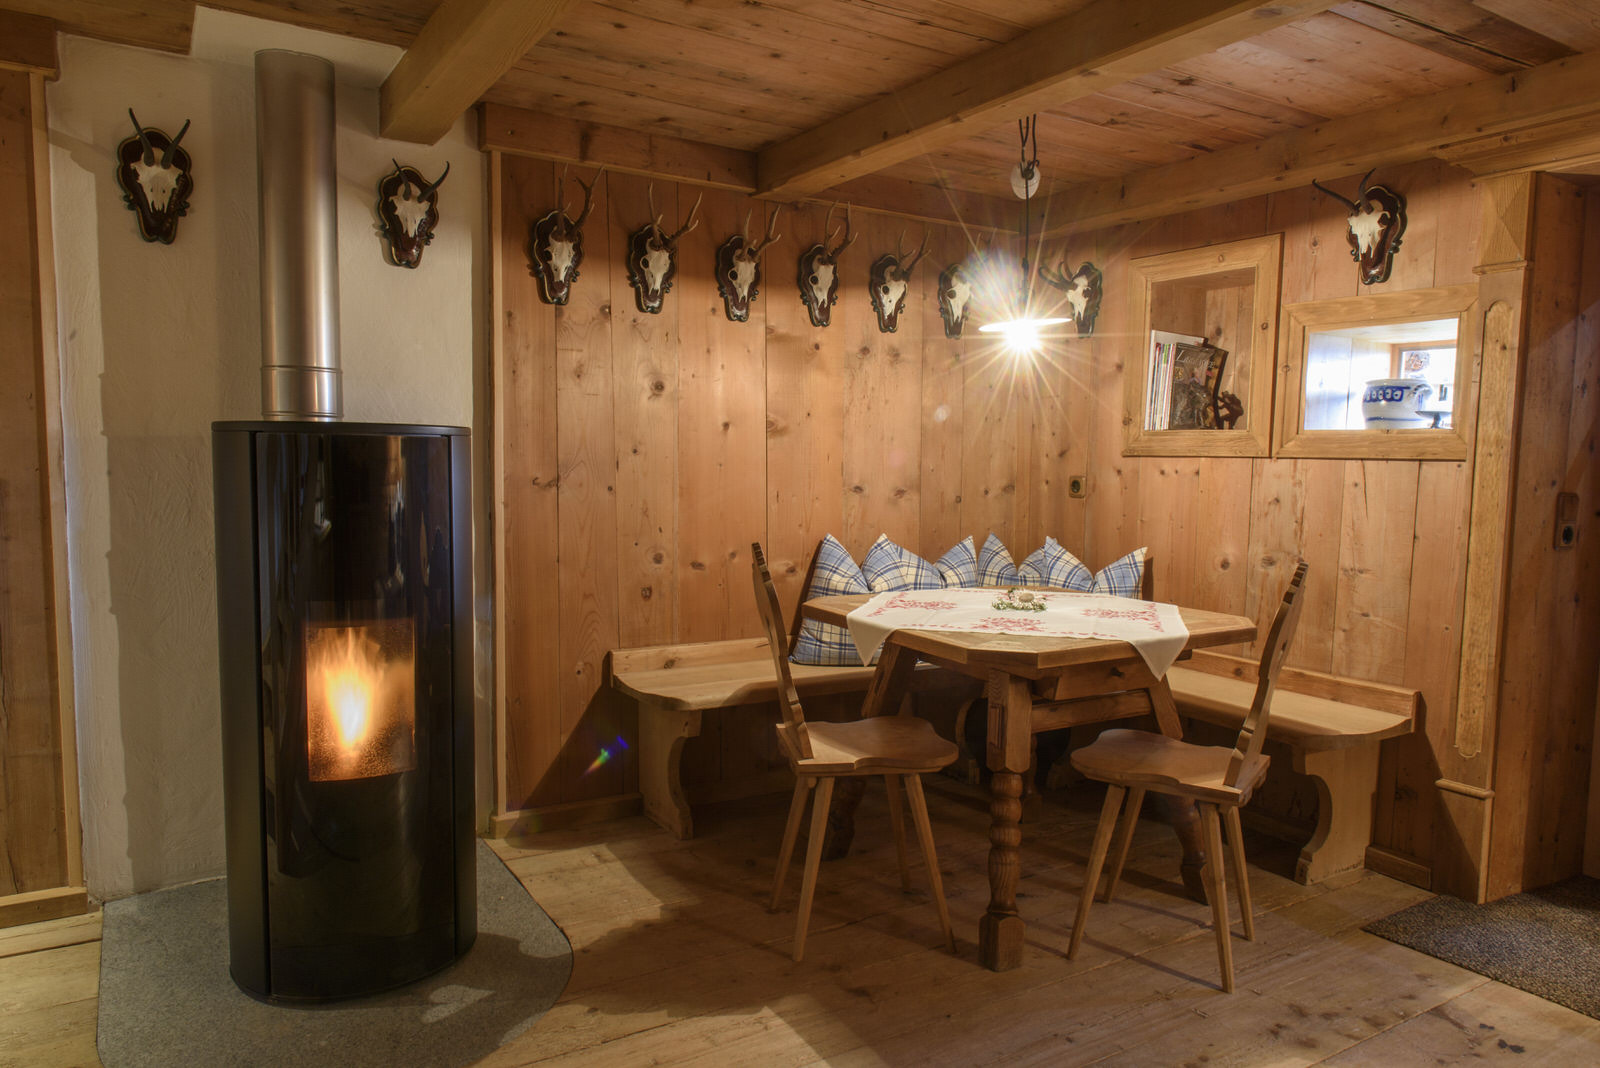 Mountain lodge Bartholomäberg in the Montafon - pellet stove